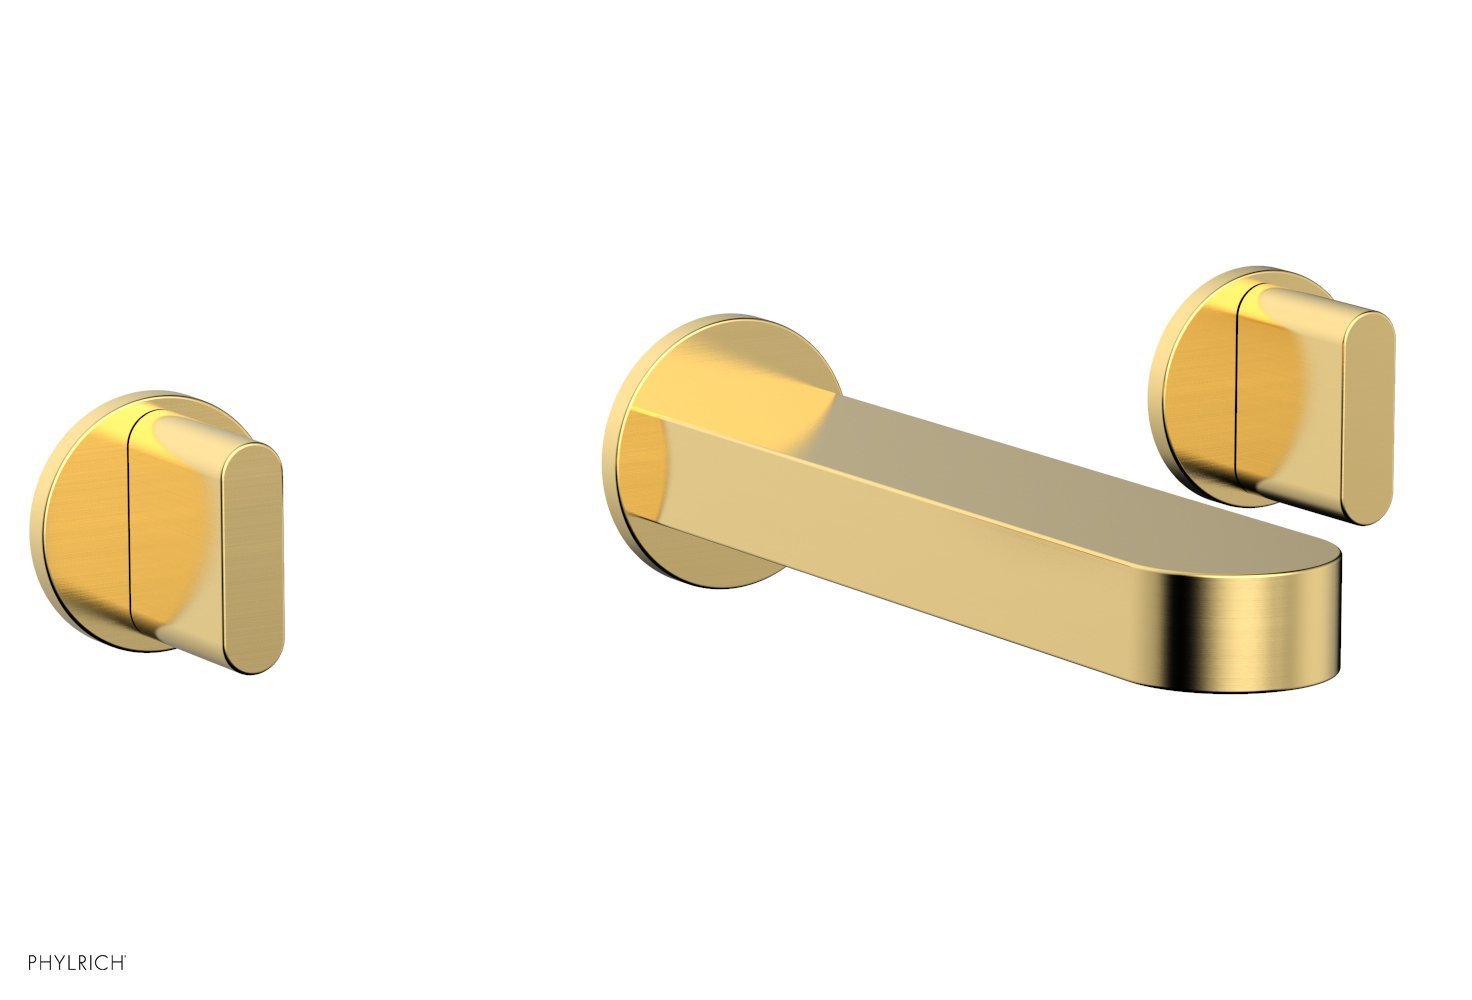 Phylrich 183-56-024 ROND Wall Tub Set - Blade Handles - Satin Gold